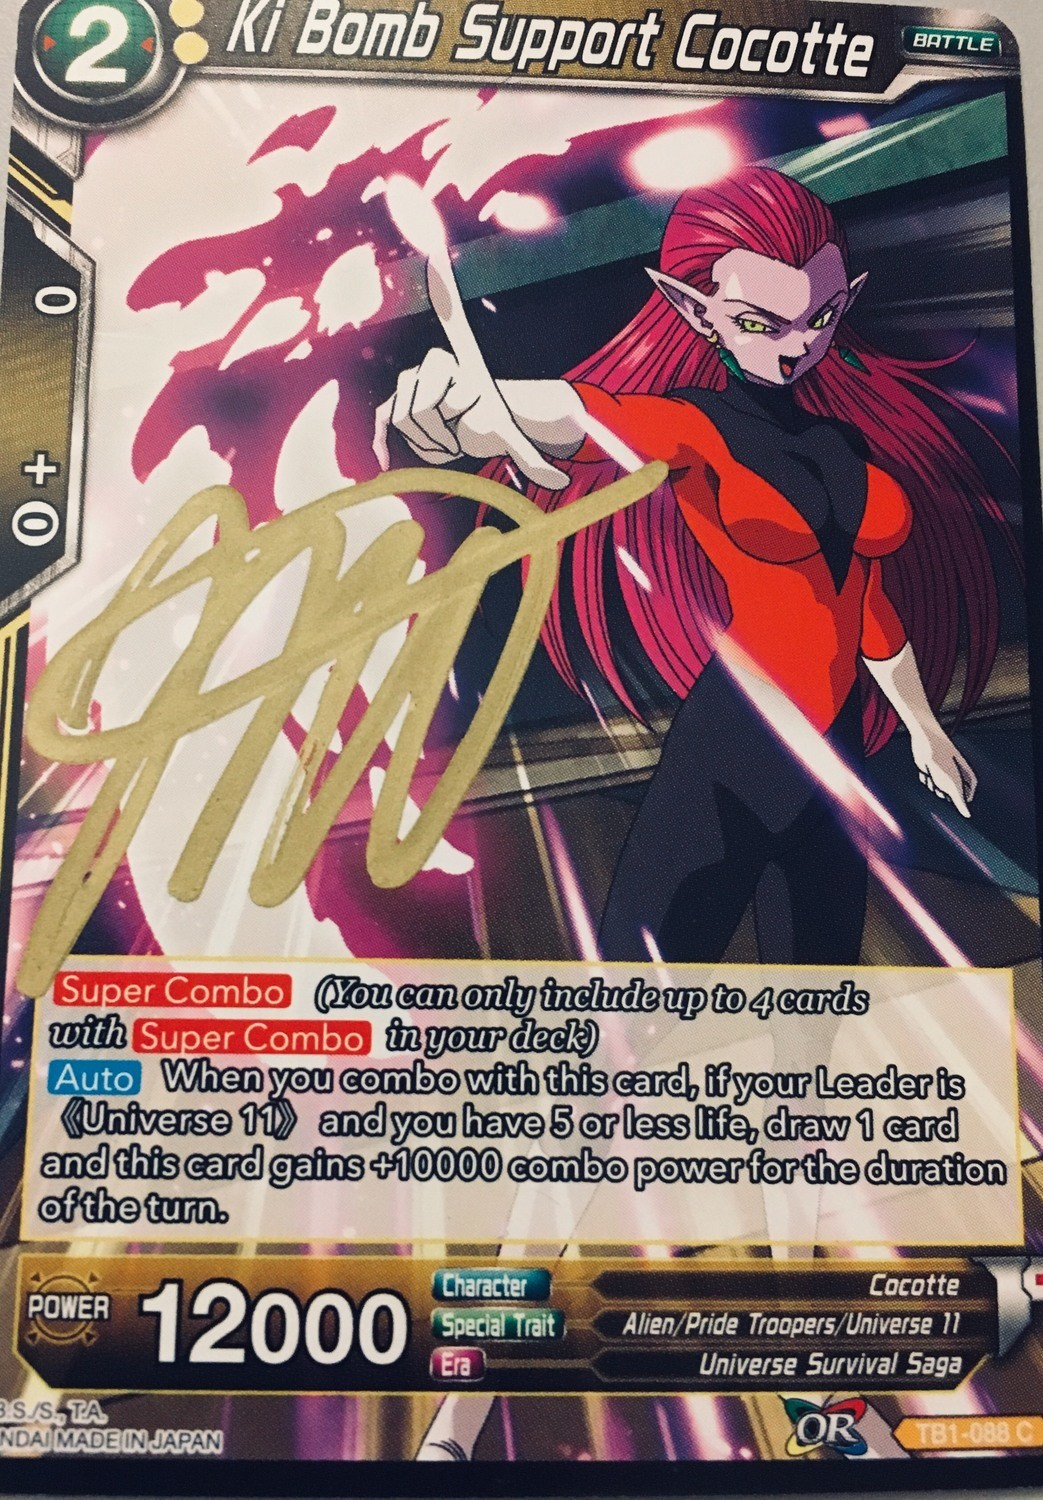 *LIMITED RUN* Dragon Ball Super: Cocotte - Signed Trading Cards